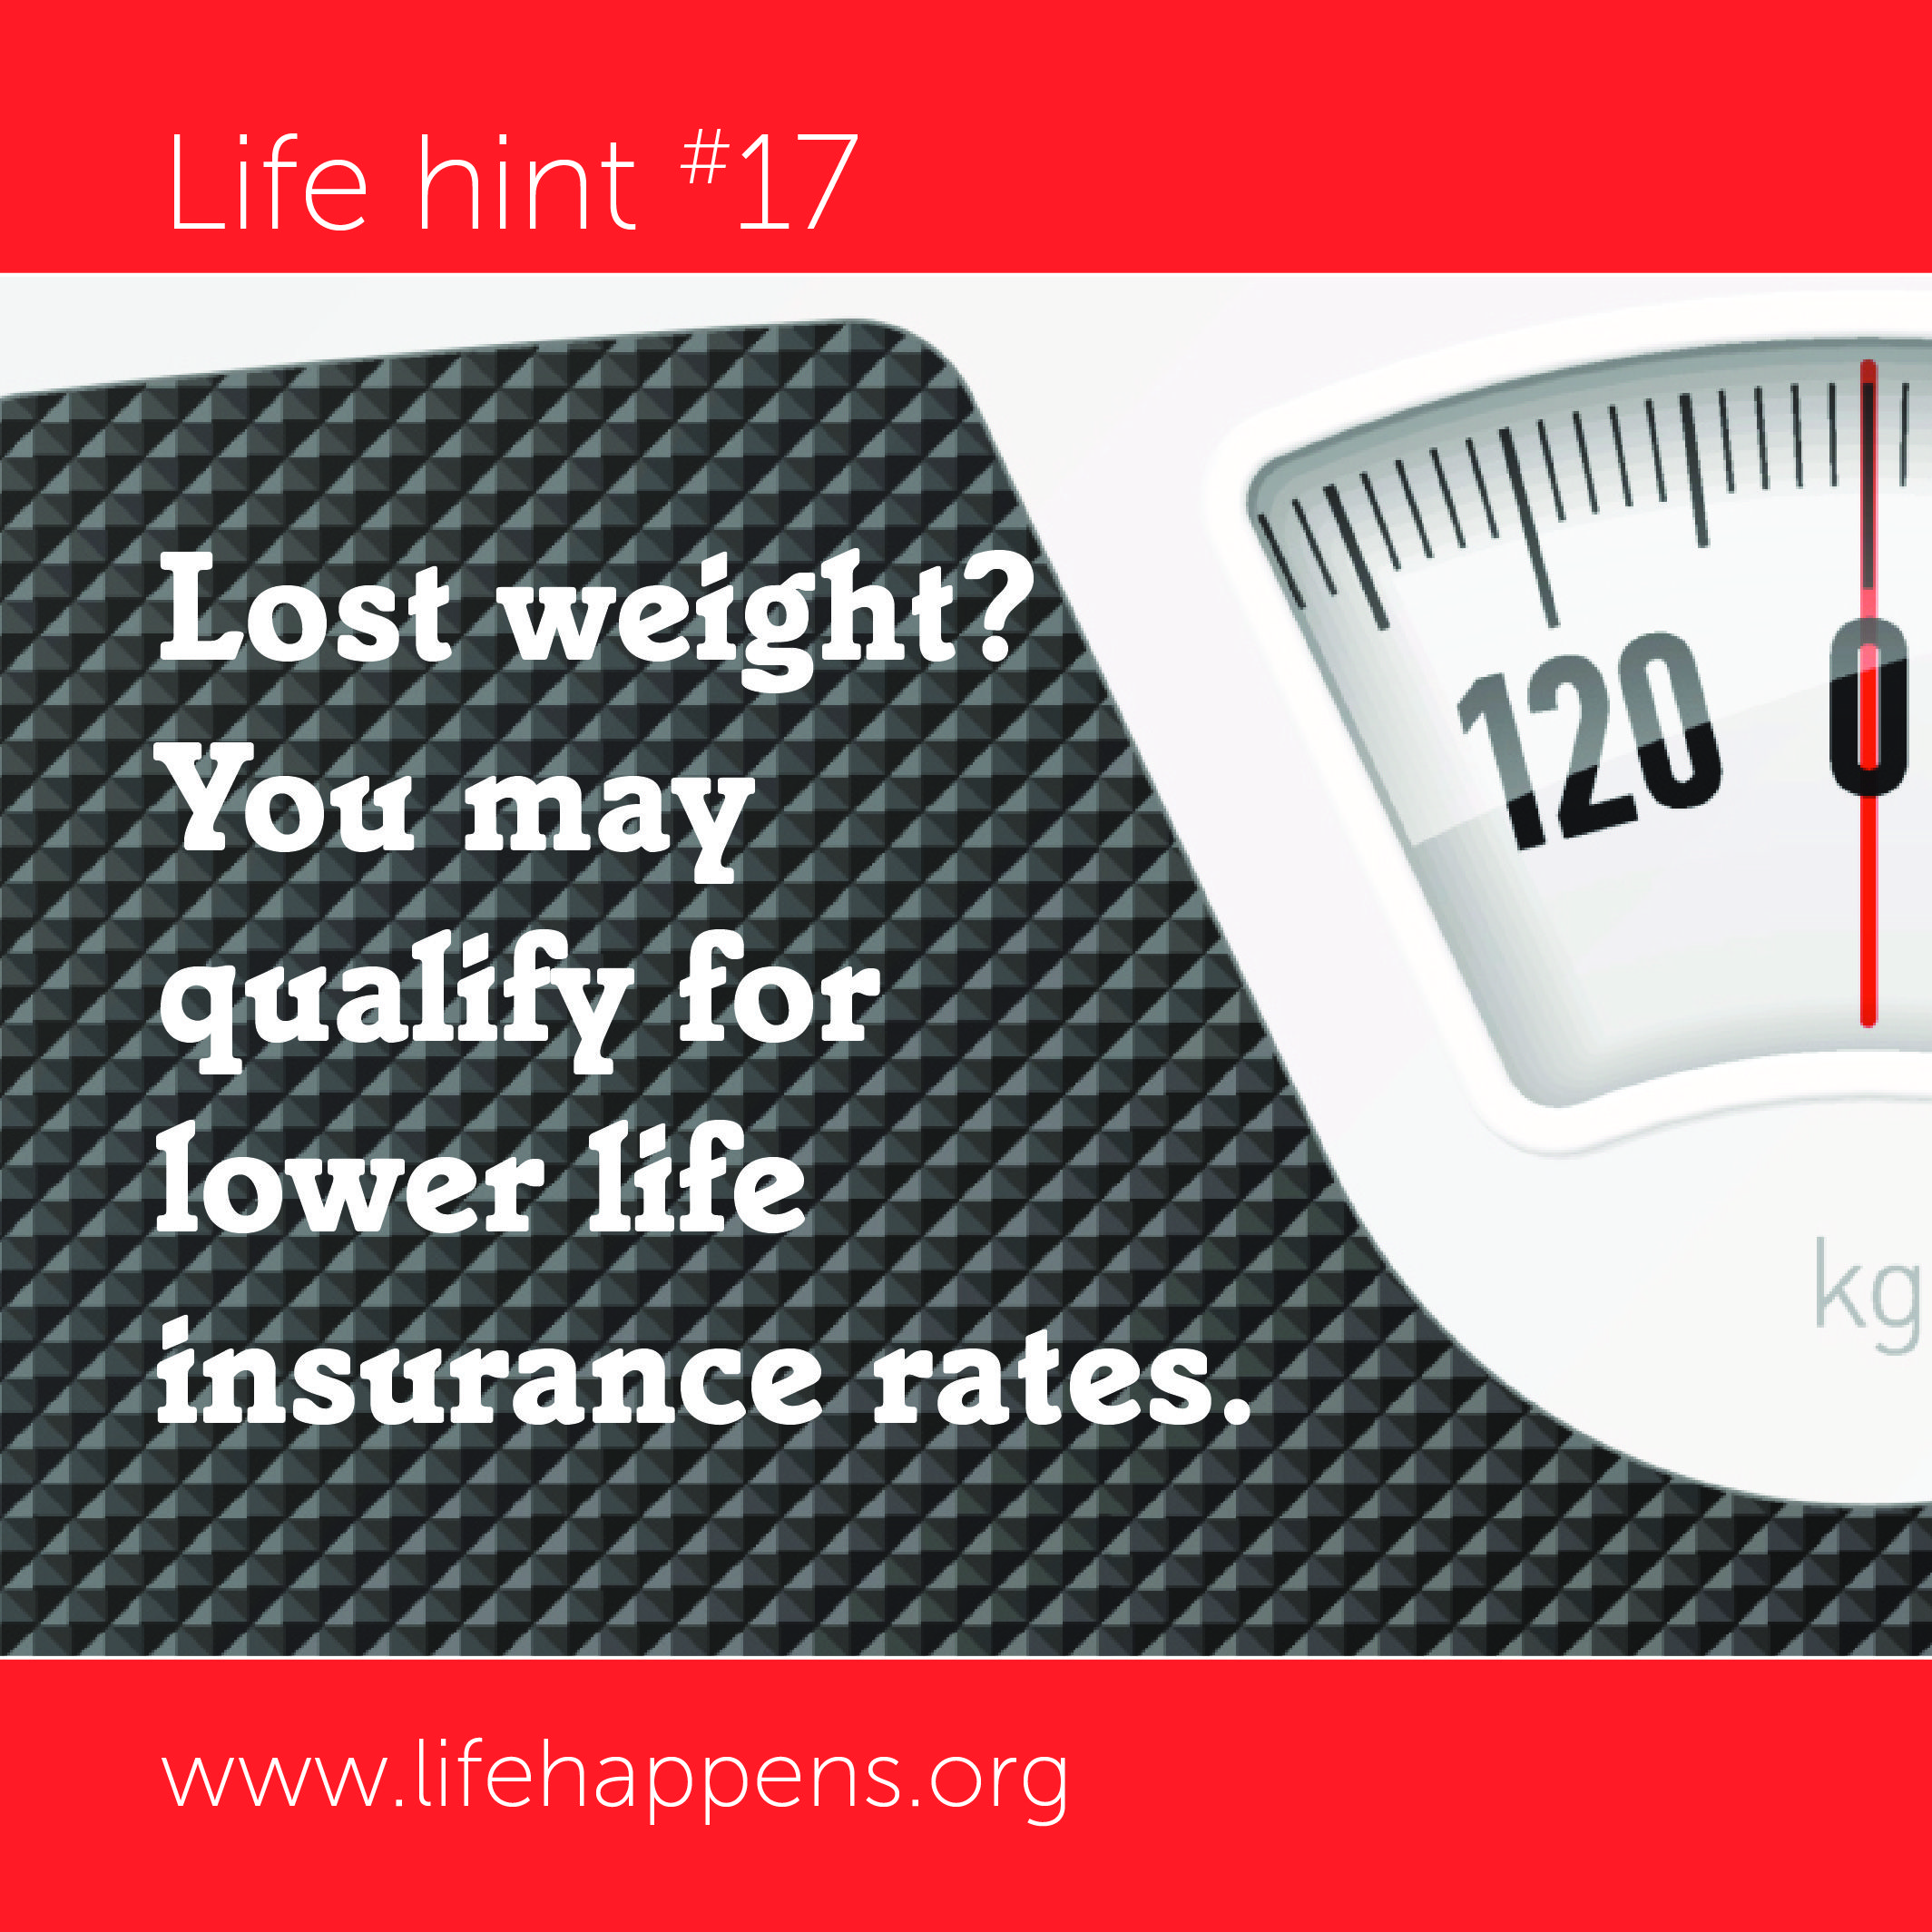 Allstate Life Insurance Quotes Life Hint 17 Lost Weight You May Qualify For Lower Life